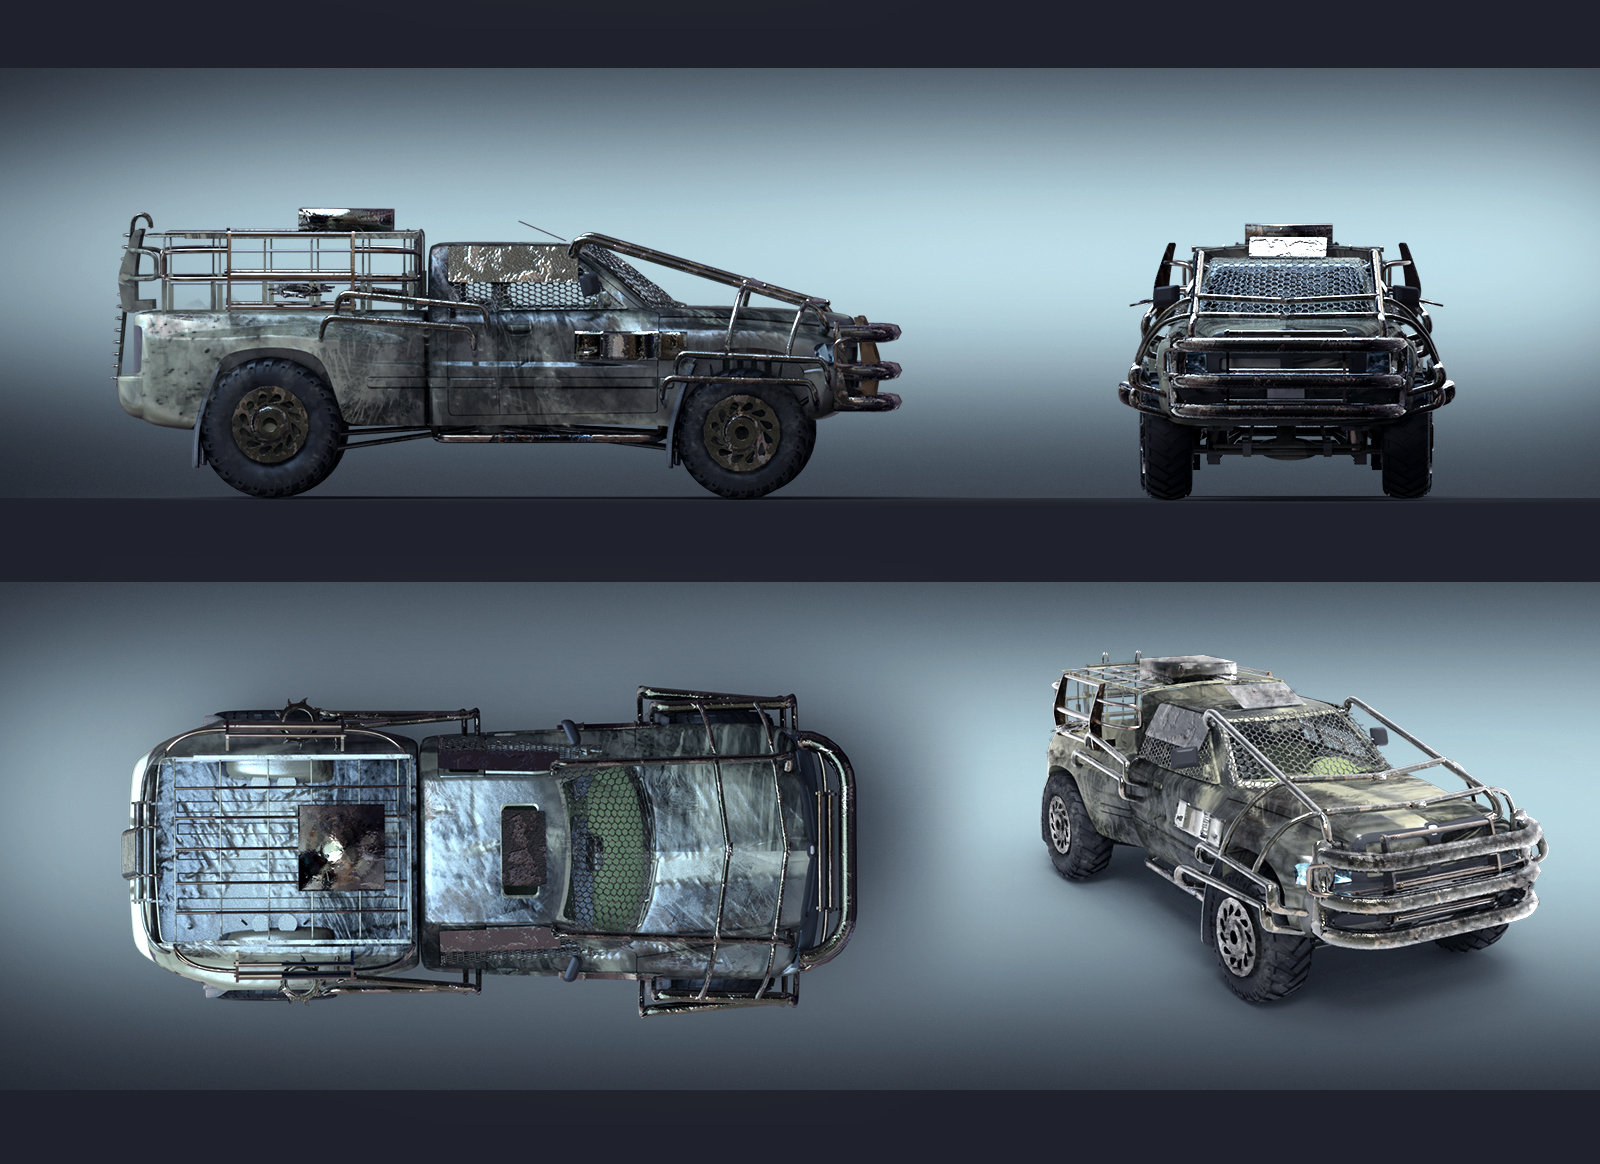 Concept Art Zombie Apocalypse Vehicles